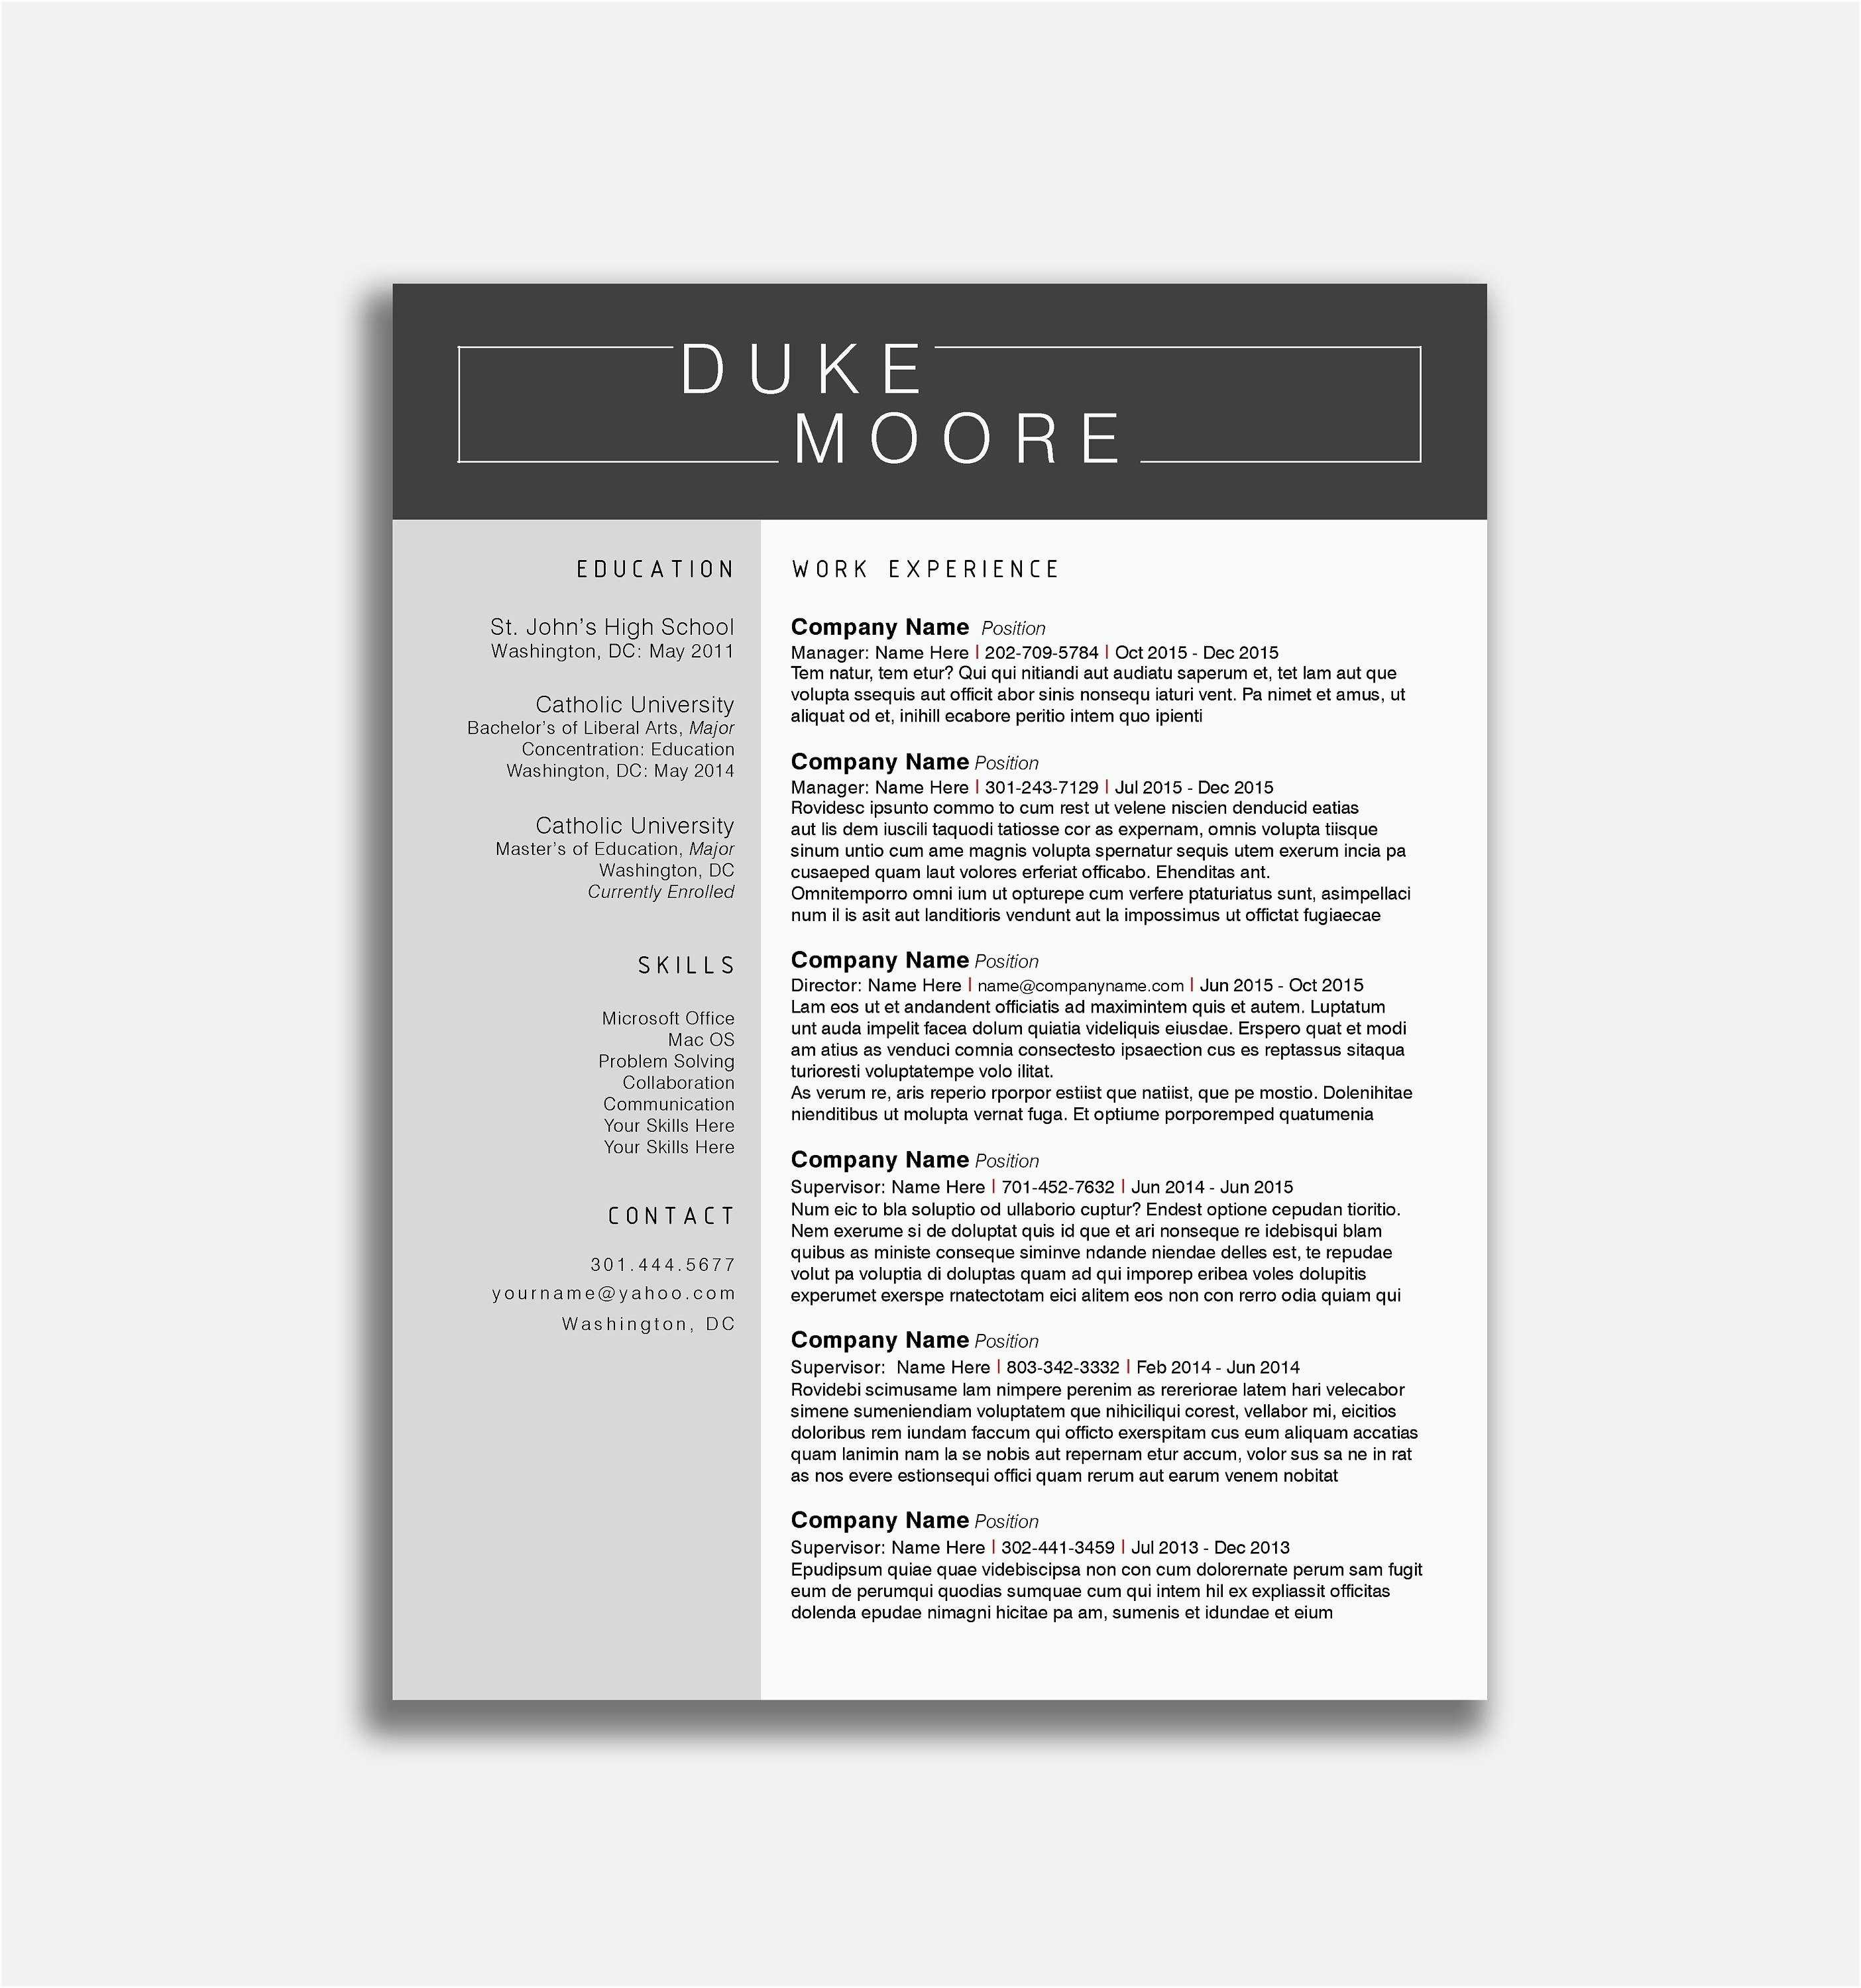 Social Media Resume Template - Executive Resume Sample 2018 Executive Resume Samples Beautiful